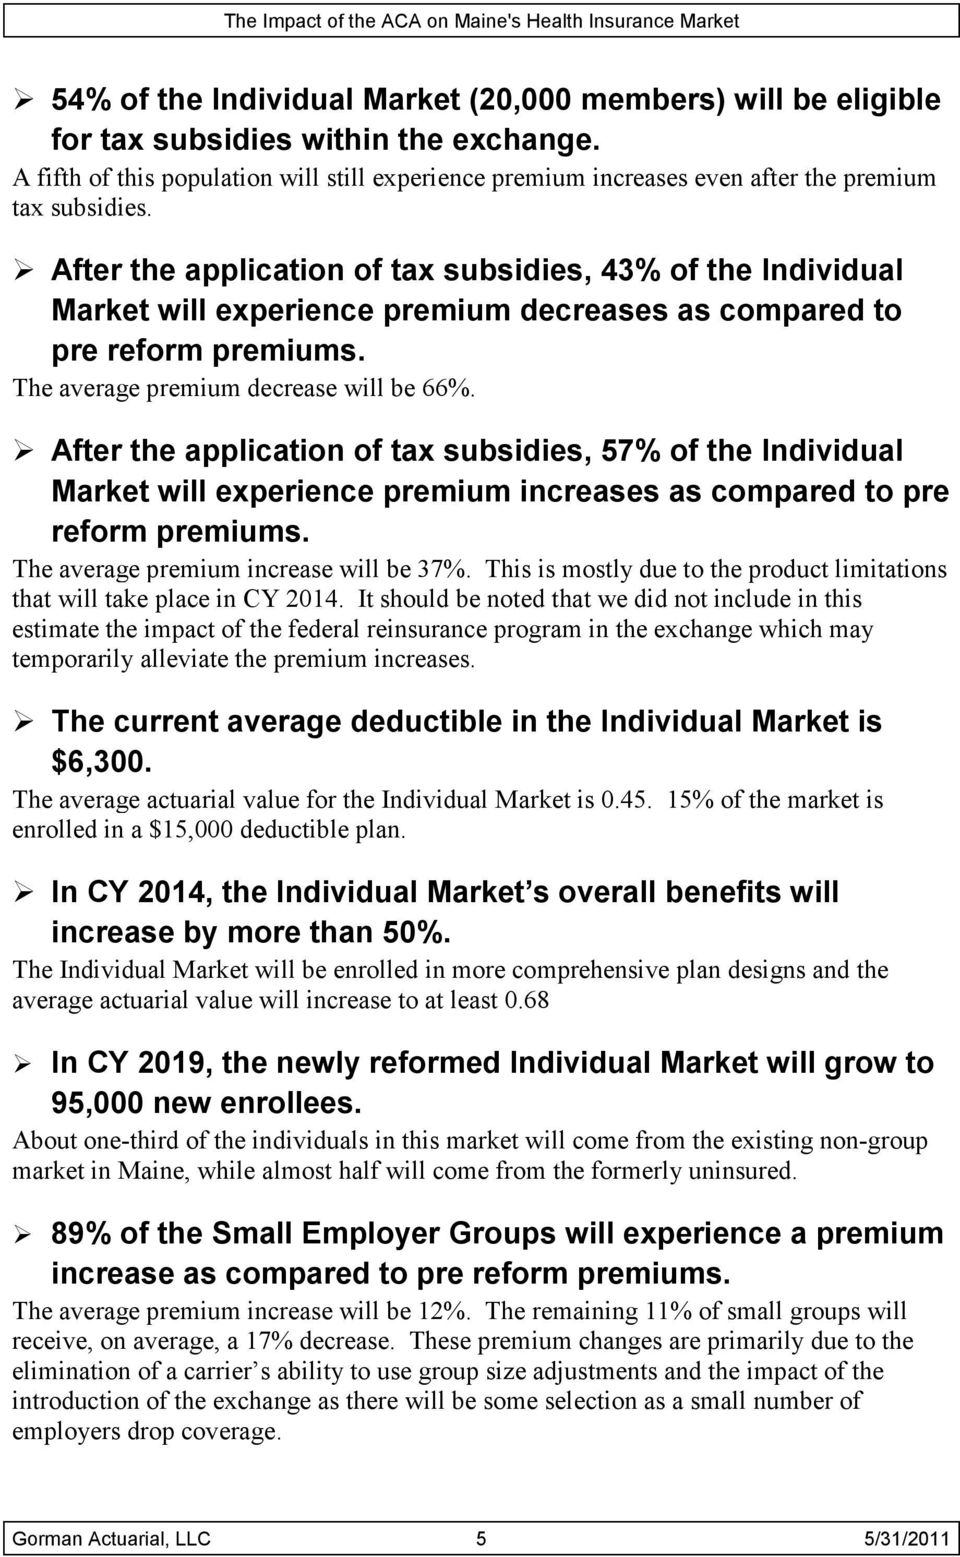 After the application of tax subsidies, 43% of the Individual Market will experience premium decreases as compared to pre reform premiums. The average premium decrease will be 66%.